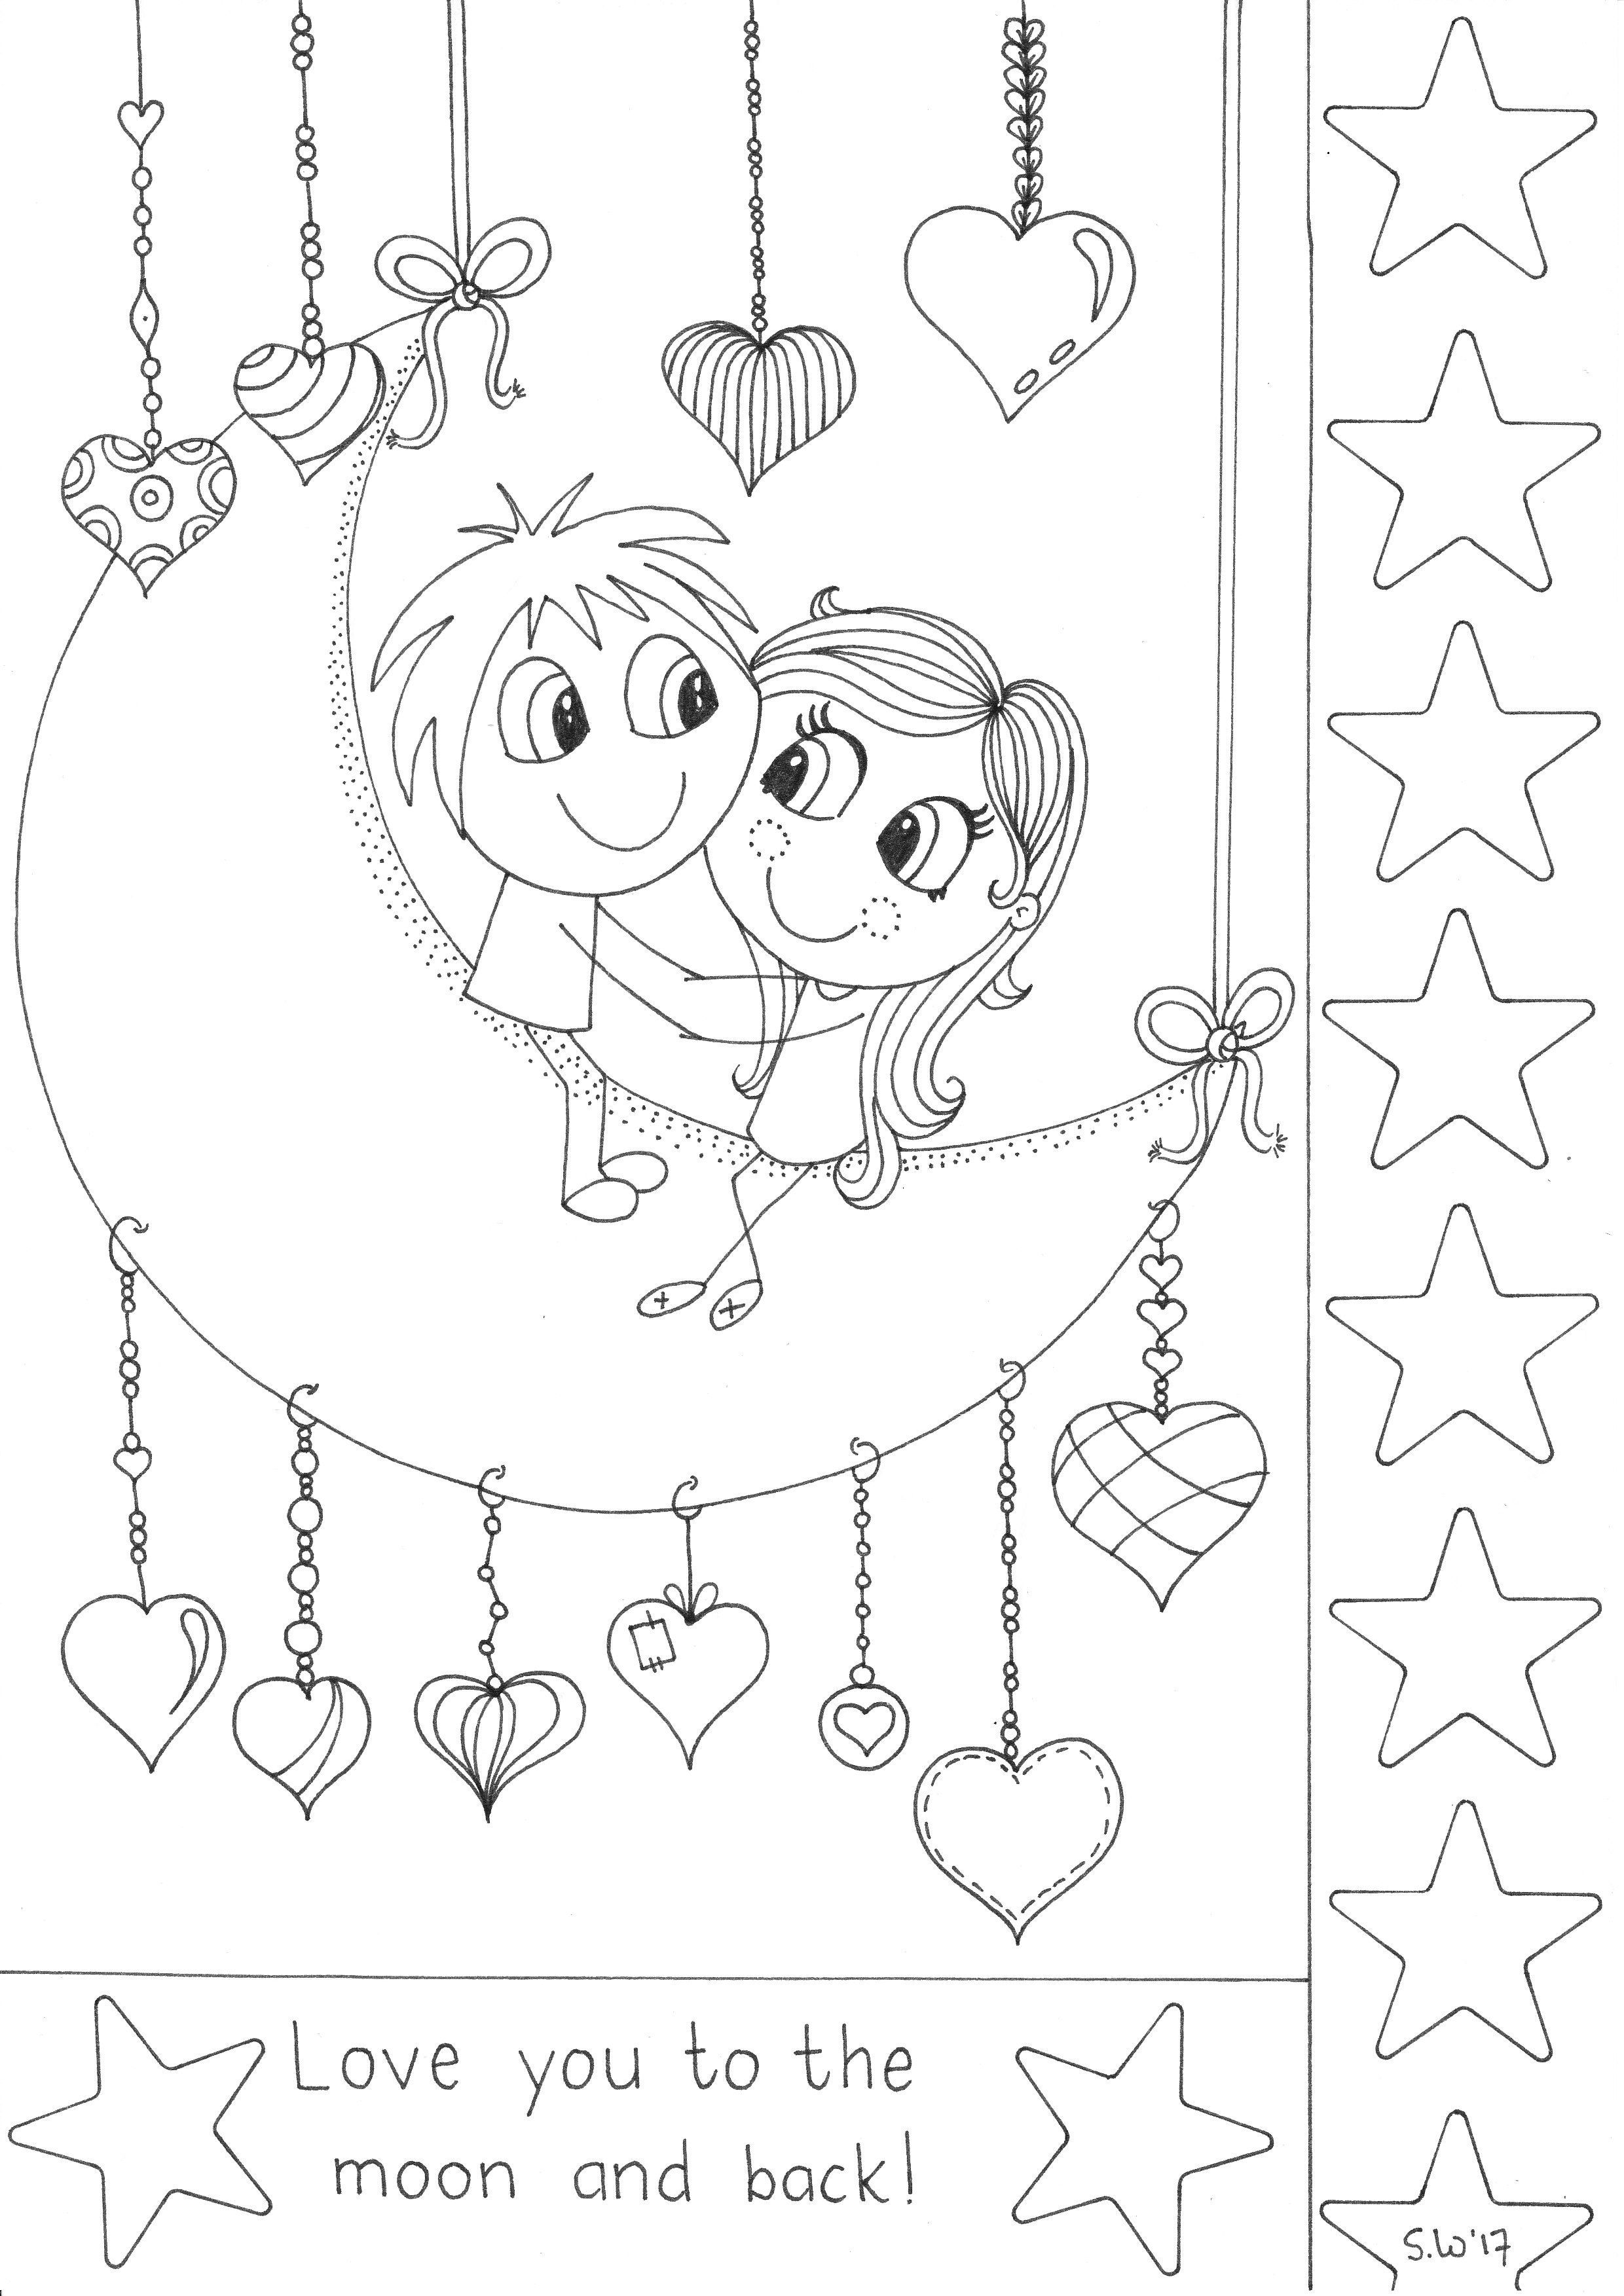 coloring sheet i love you to the moon and back coloring pages i love you to the moon and back coloring pages part 1 back moon coloring and pages sheet coloring to the i love you